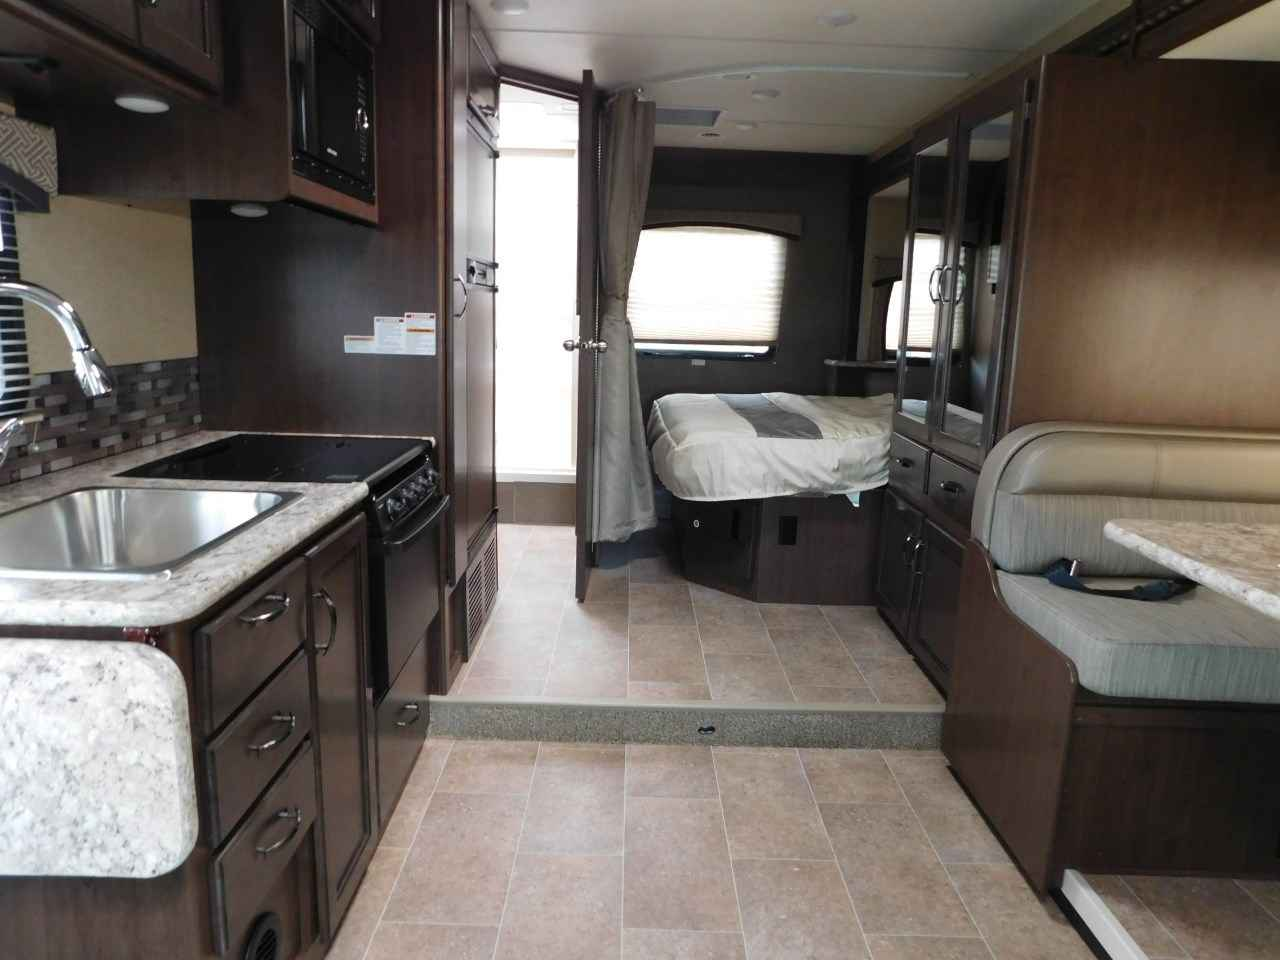 2018 new thor motor coach chateau 24f full wall slide for Motor coaches with 2 bedrooms